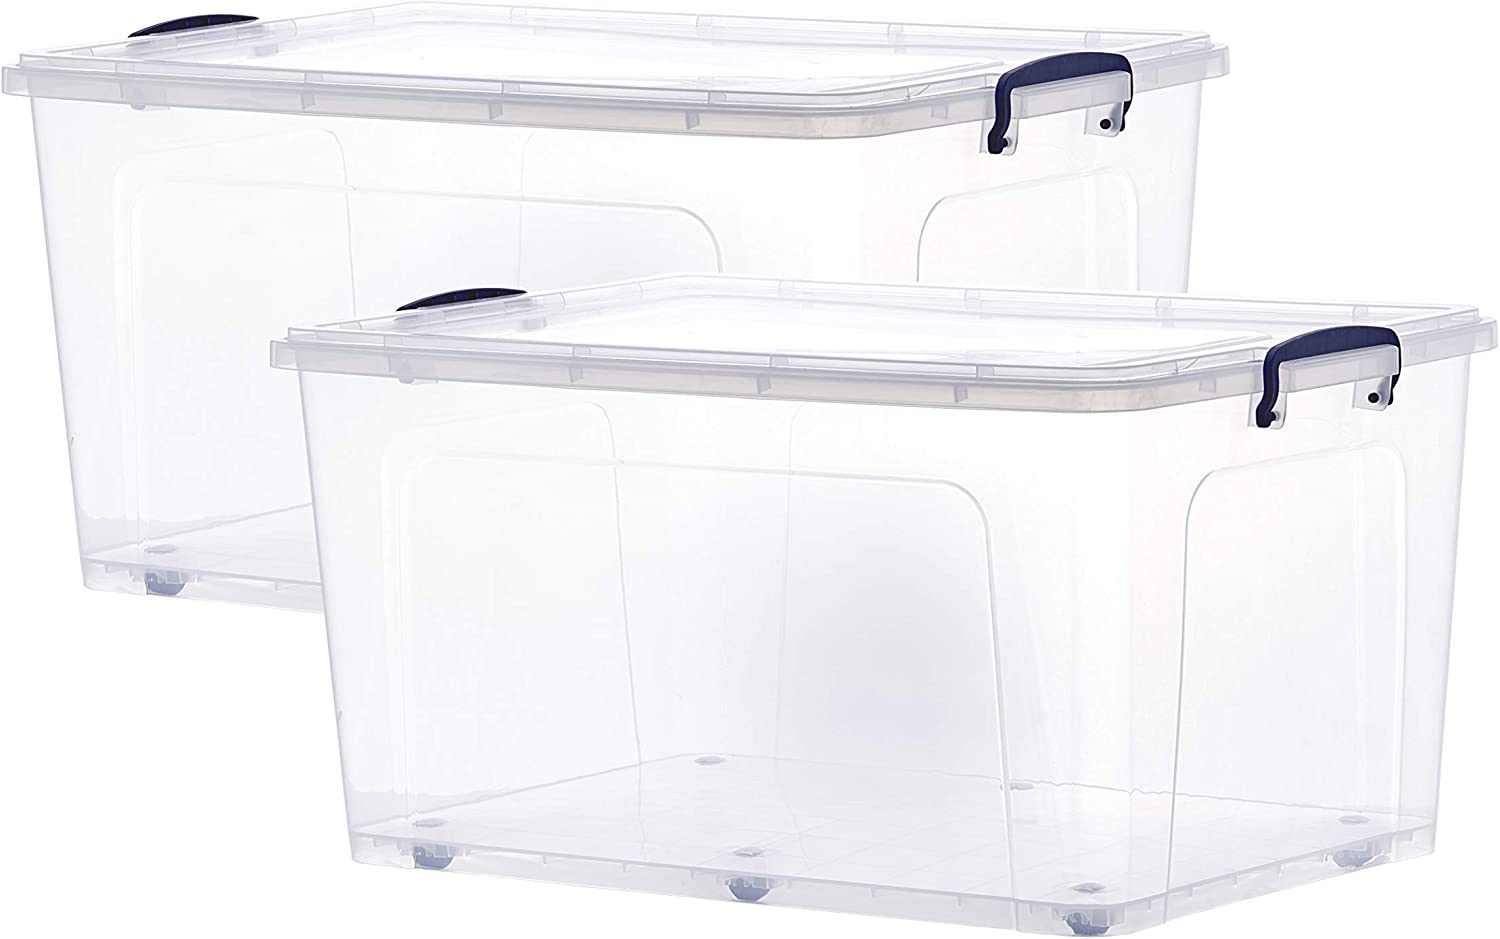 Superio Storage Containers With Wheels 44 Qt. (2 Pack), Stackable Large Storage Containers With Lids, Durable Latches